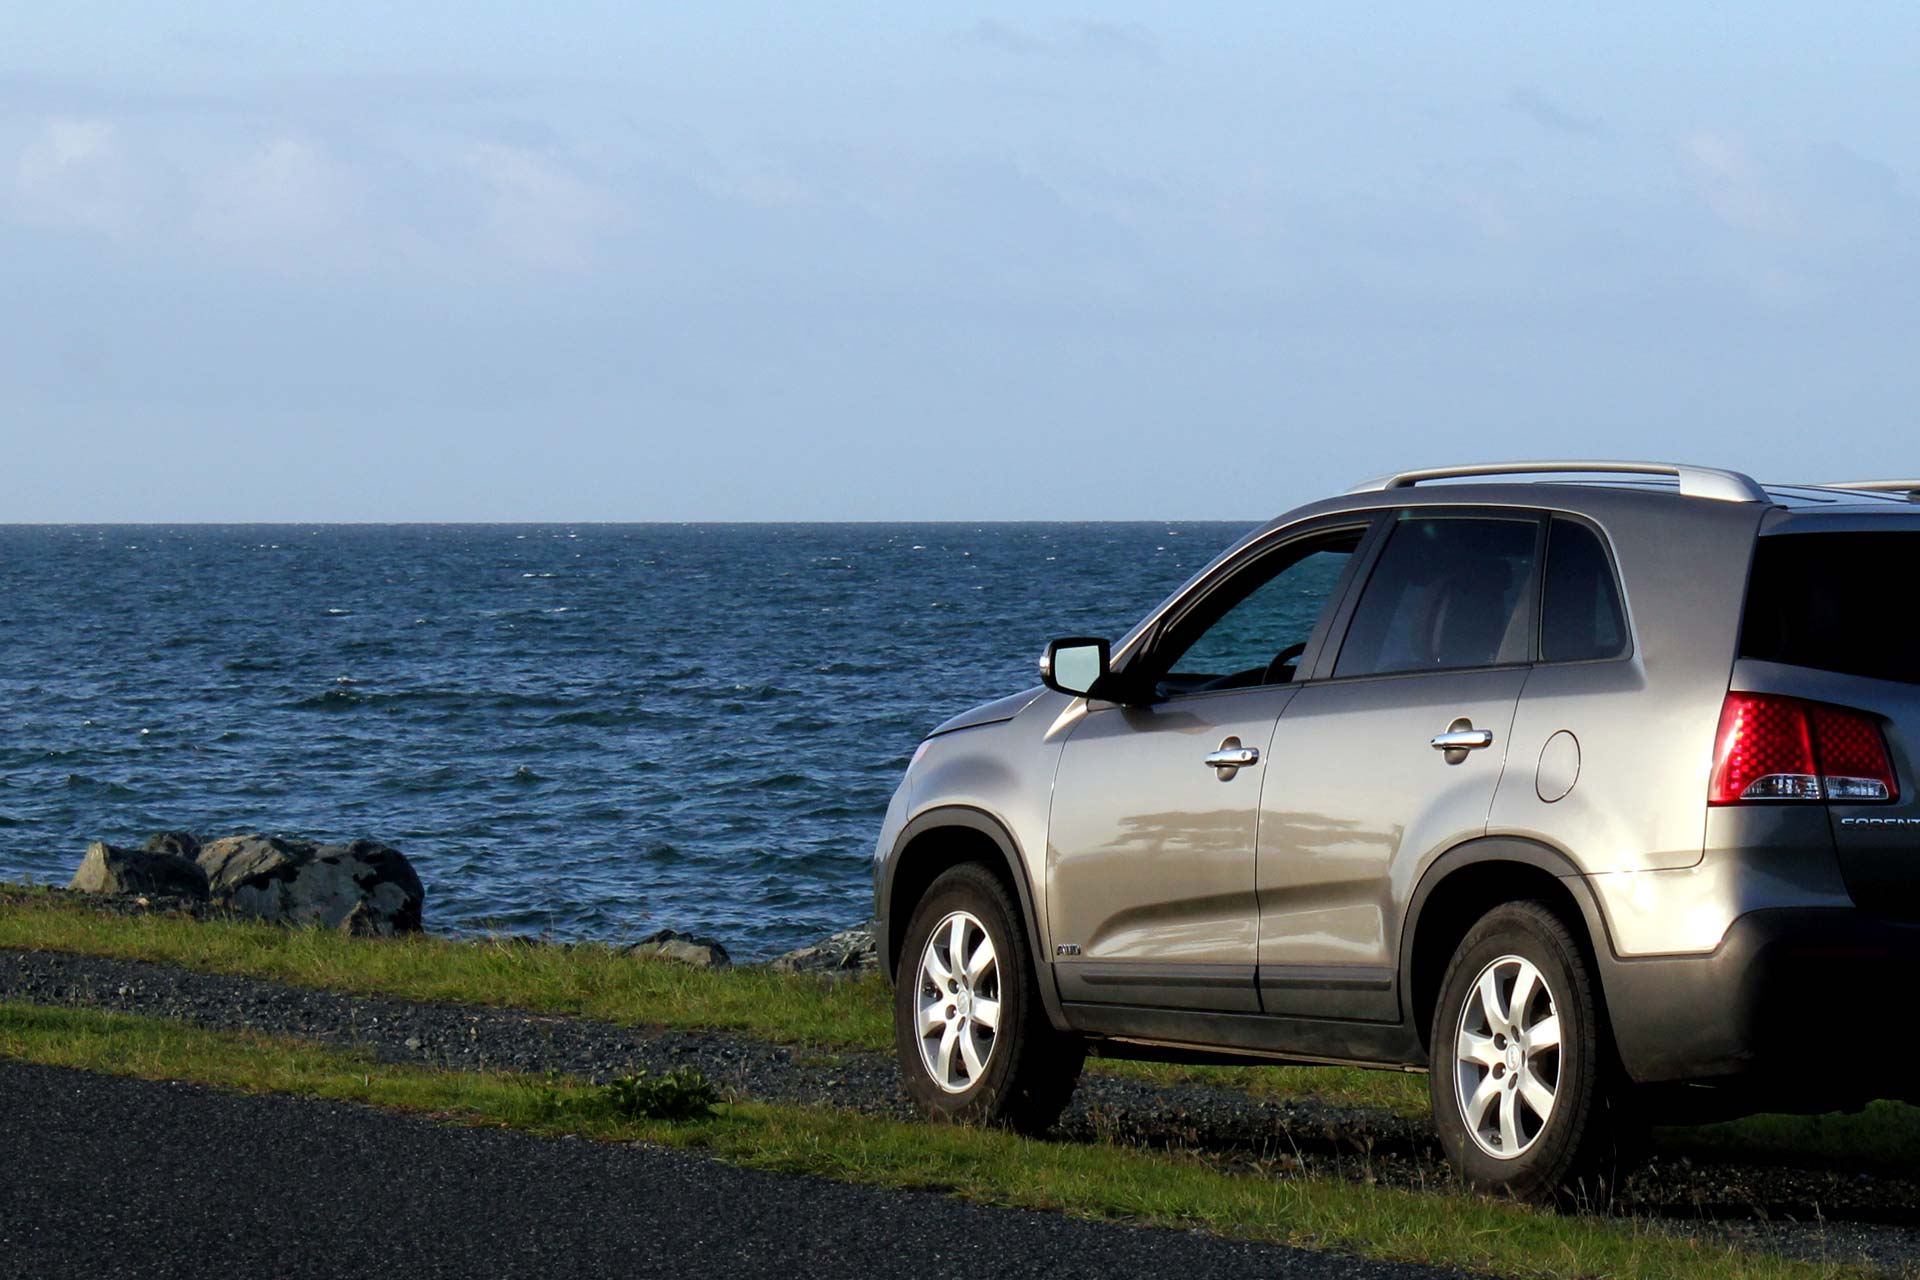 Kia SUV rental on Vieques